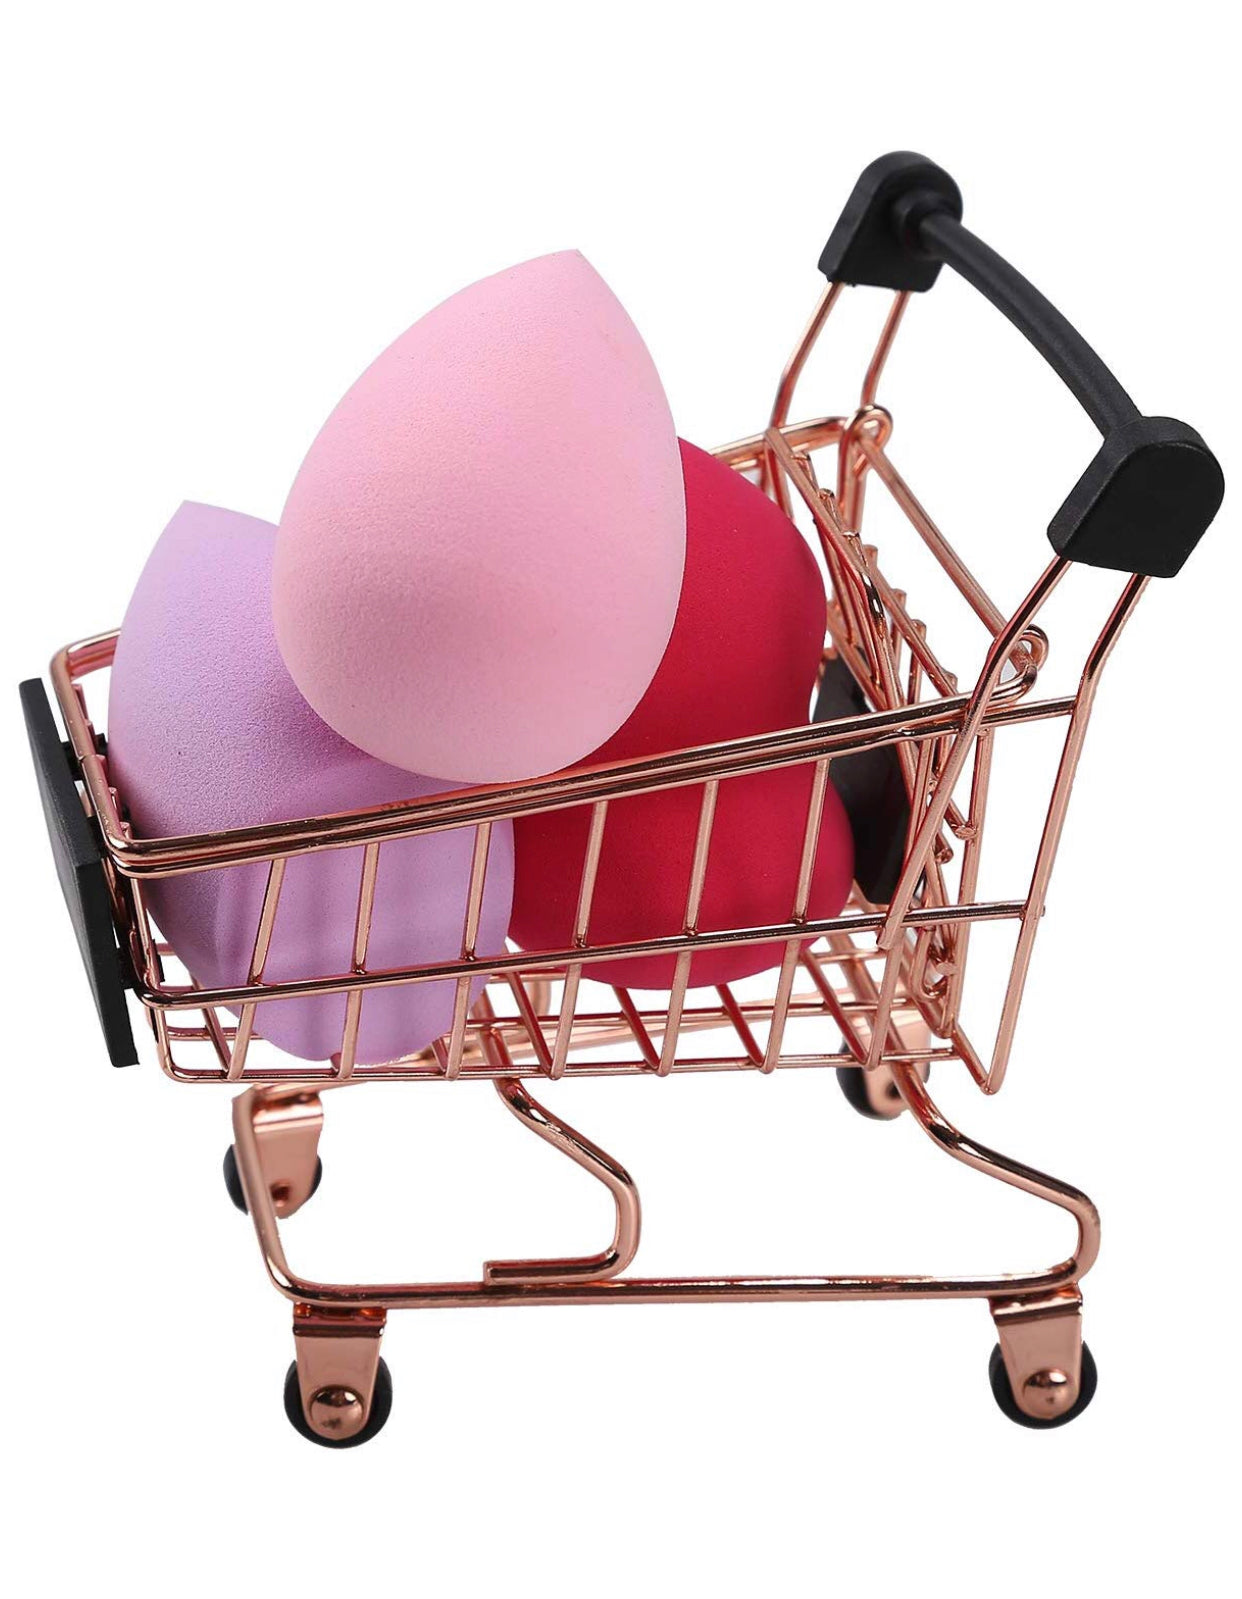 Set de esponjas Beauty Blender/Carrito